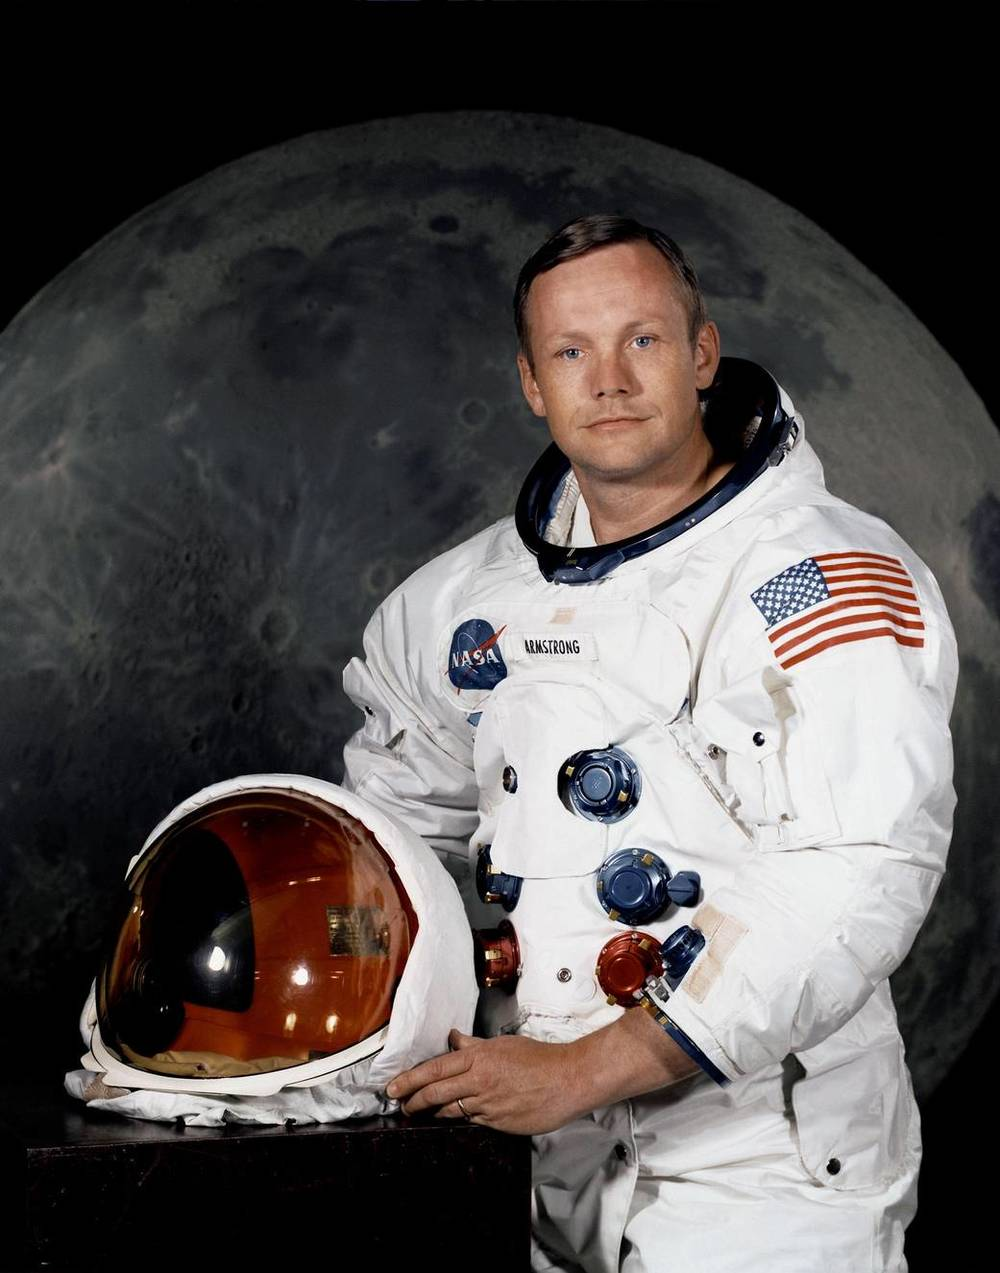 Official Portrait of Neil Armstrong. Portrait of Astronaut Neil A. Armstrong, commander of the Apollo 11 Lunar Landing mission in his space suit.  Image credit: NASA